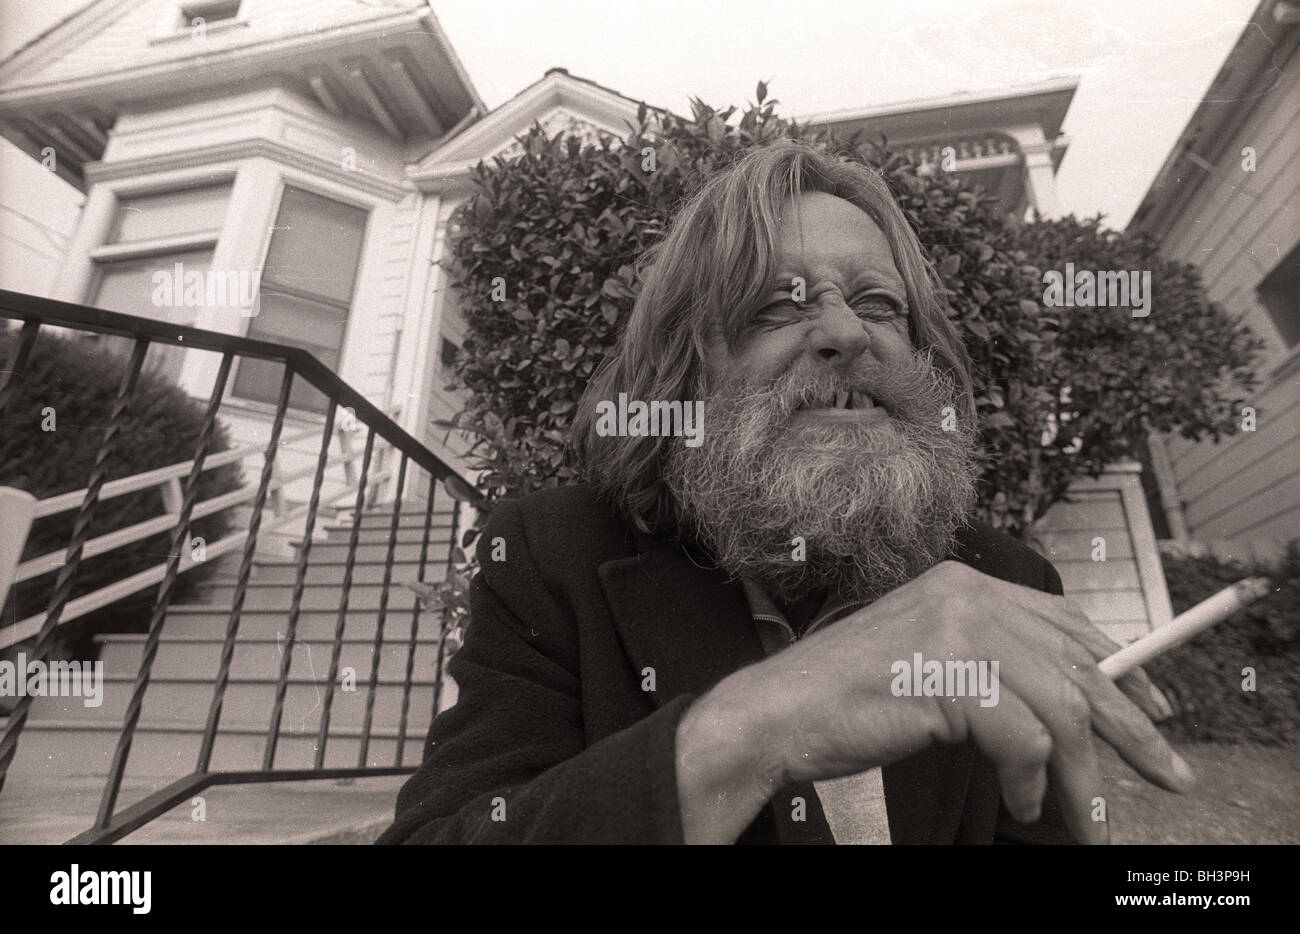 1960s musician Skip Spence outside a halfway house on the streets of San Jose, California. Moby Grape Jefferson Stock Photo